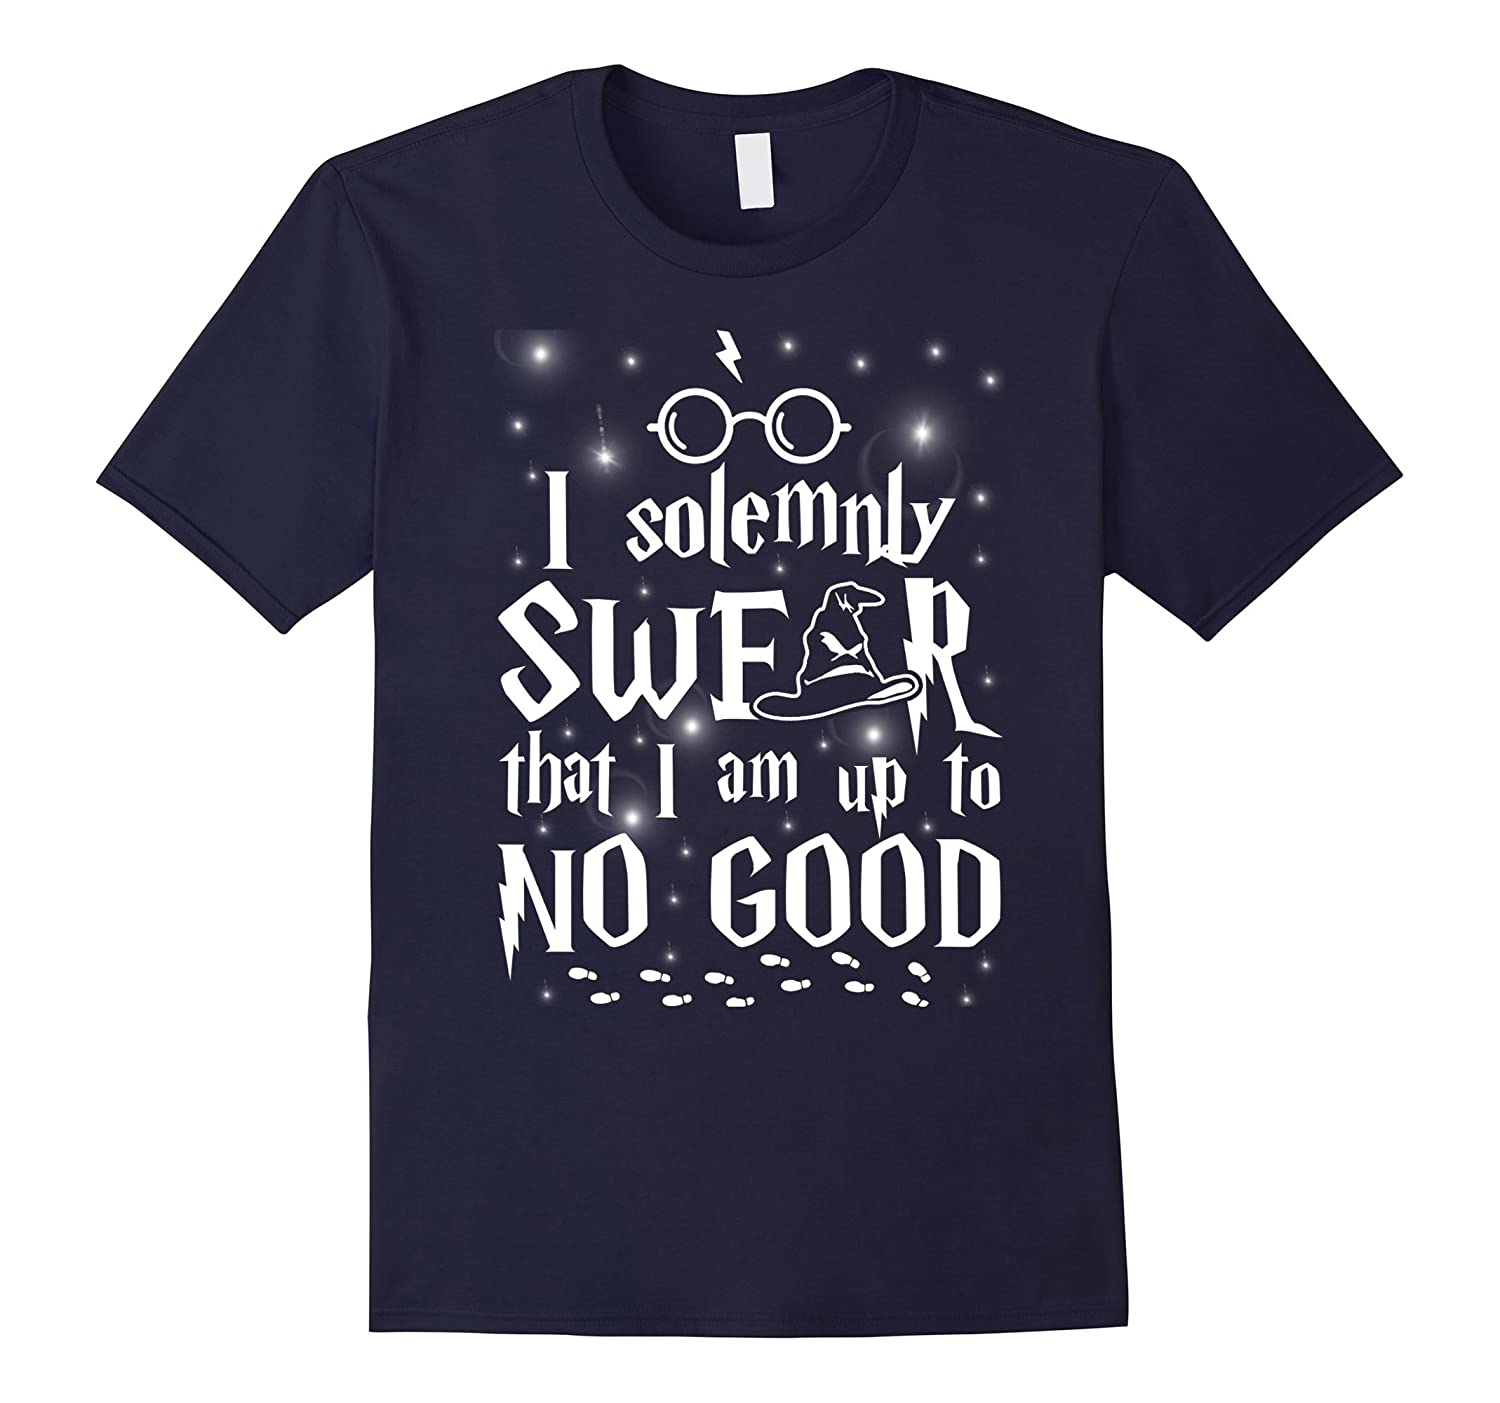 I solemnly swear that I am up to no good Shirt